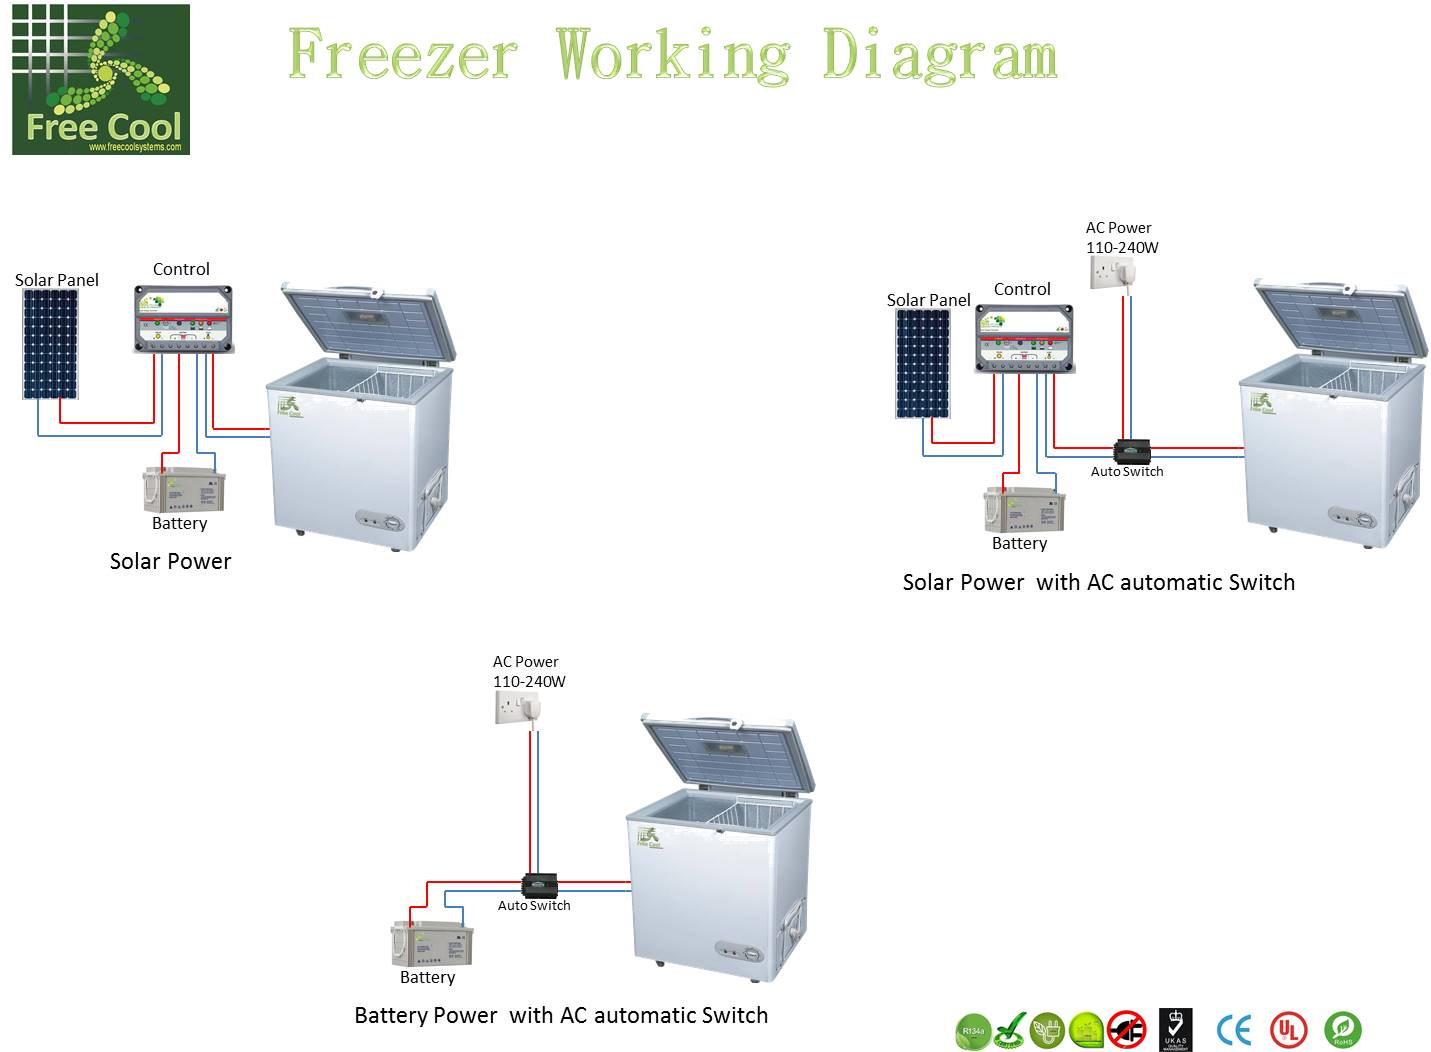 how a freezer works diagram yamaha virago 250 wiring free cool systems home